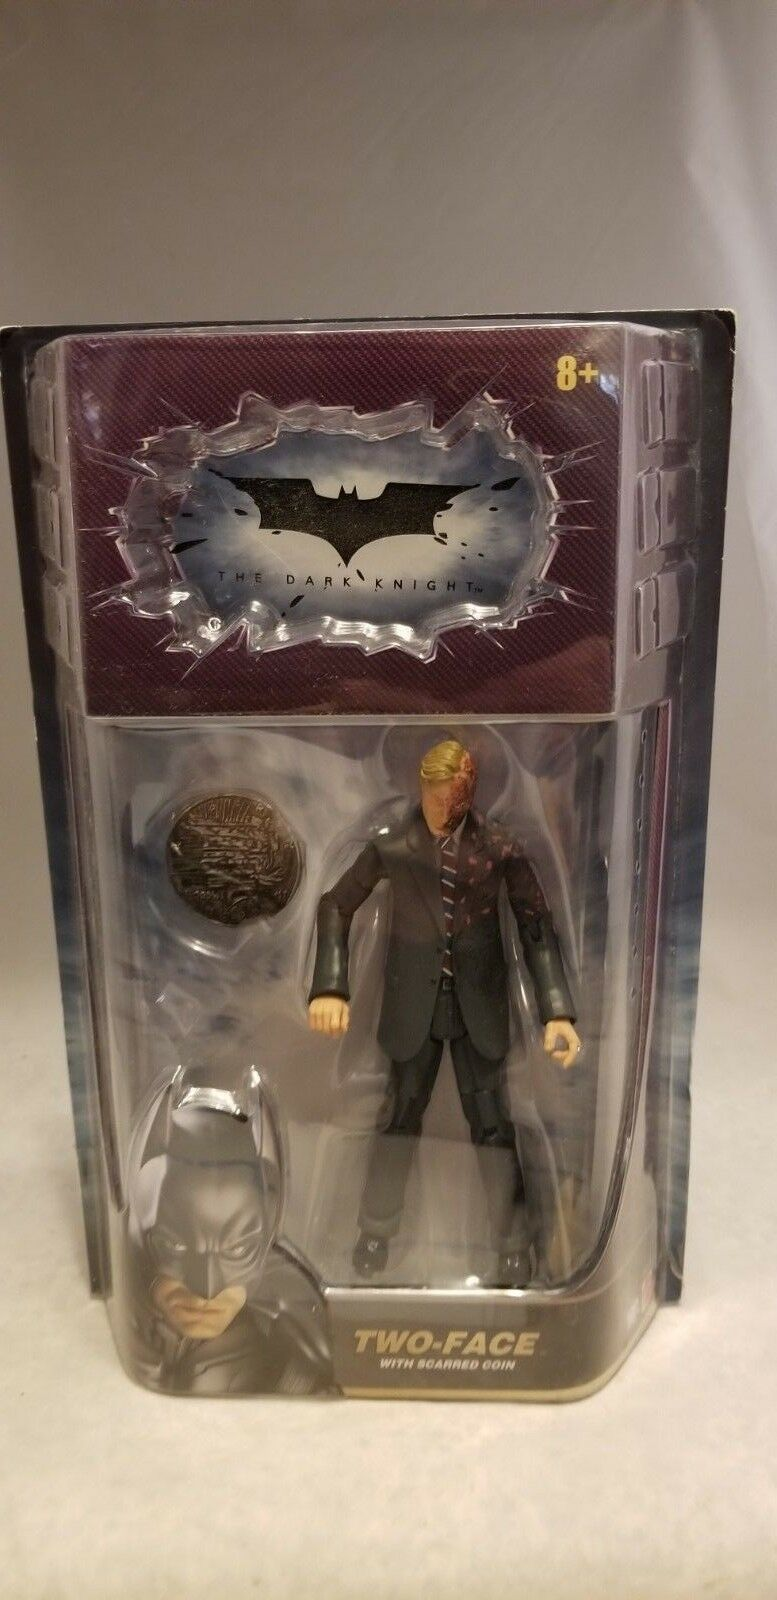 THE DARK KNIGHT 6  TWO FACE FIGURE